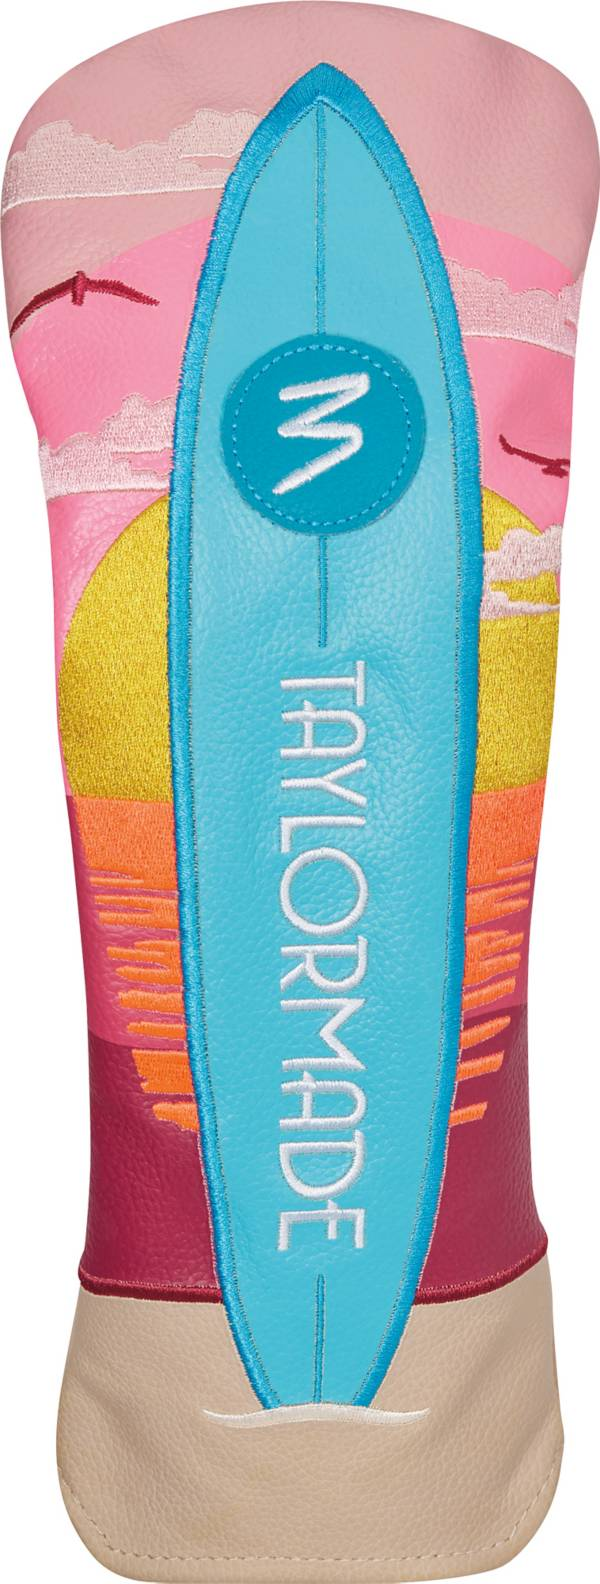 TaylorMade Summer Commemorative Fairway Headcover product image